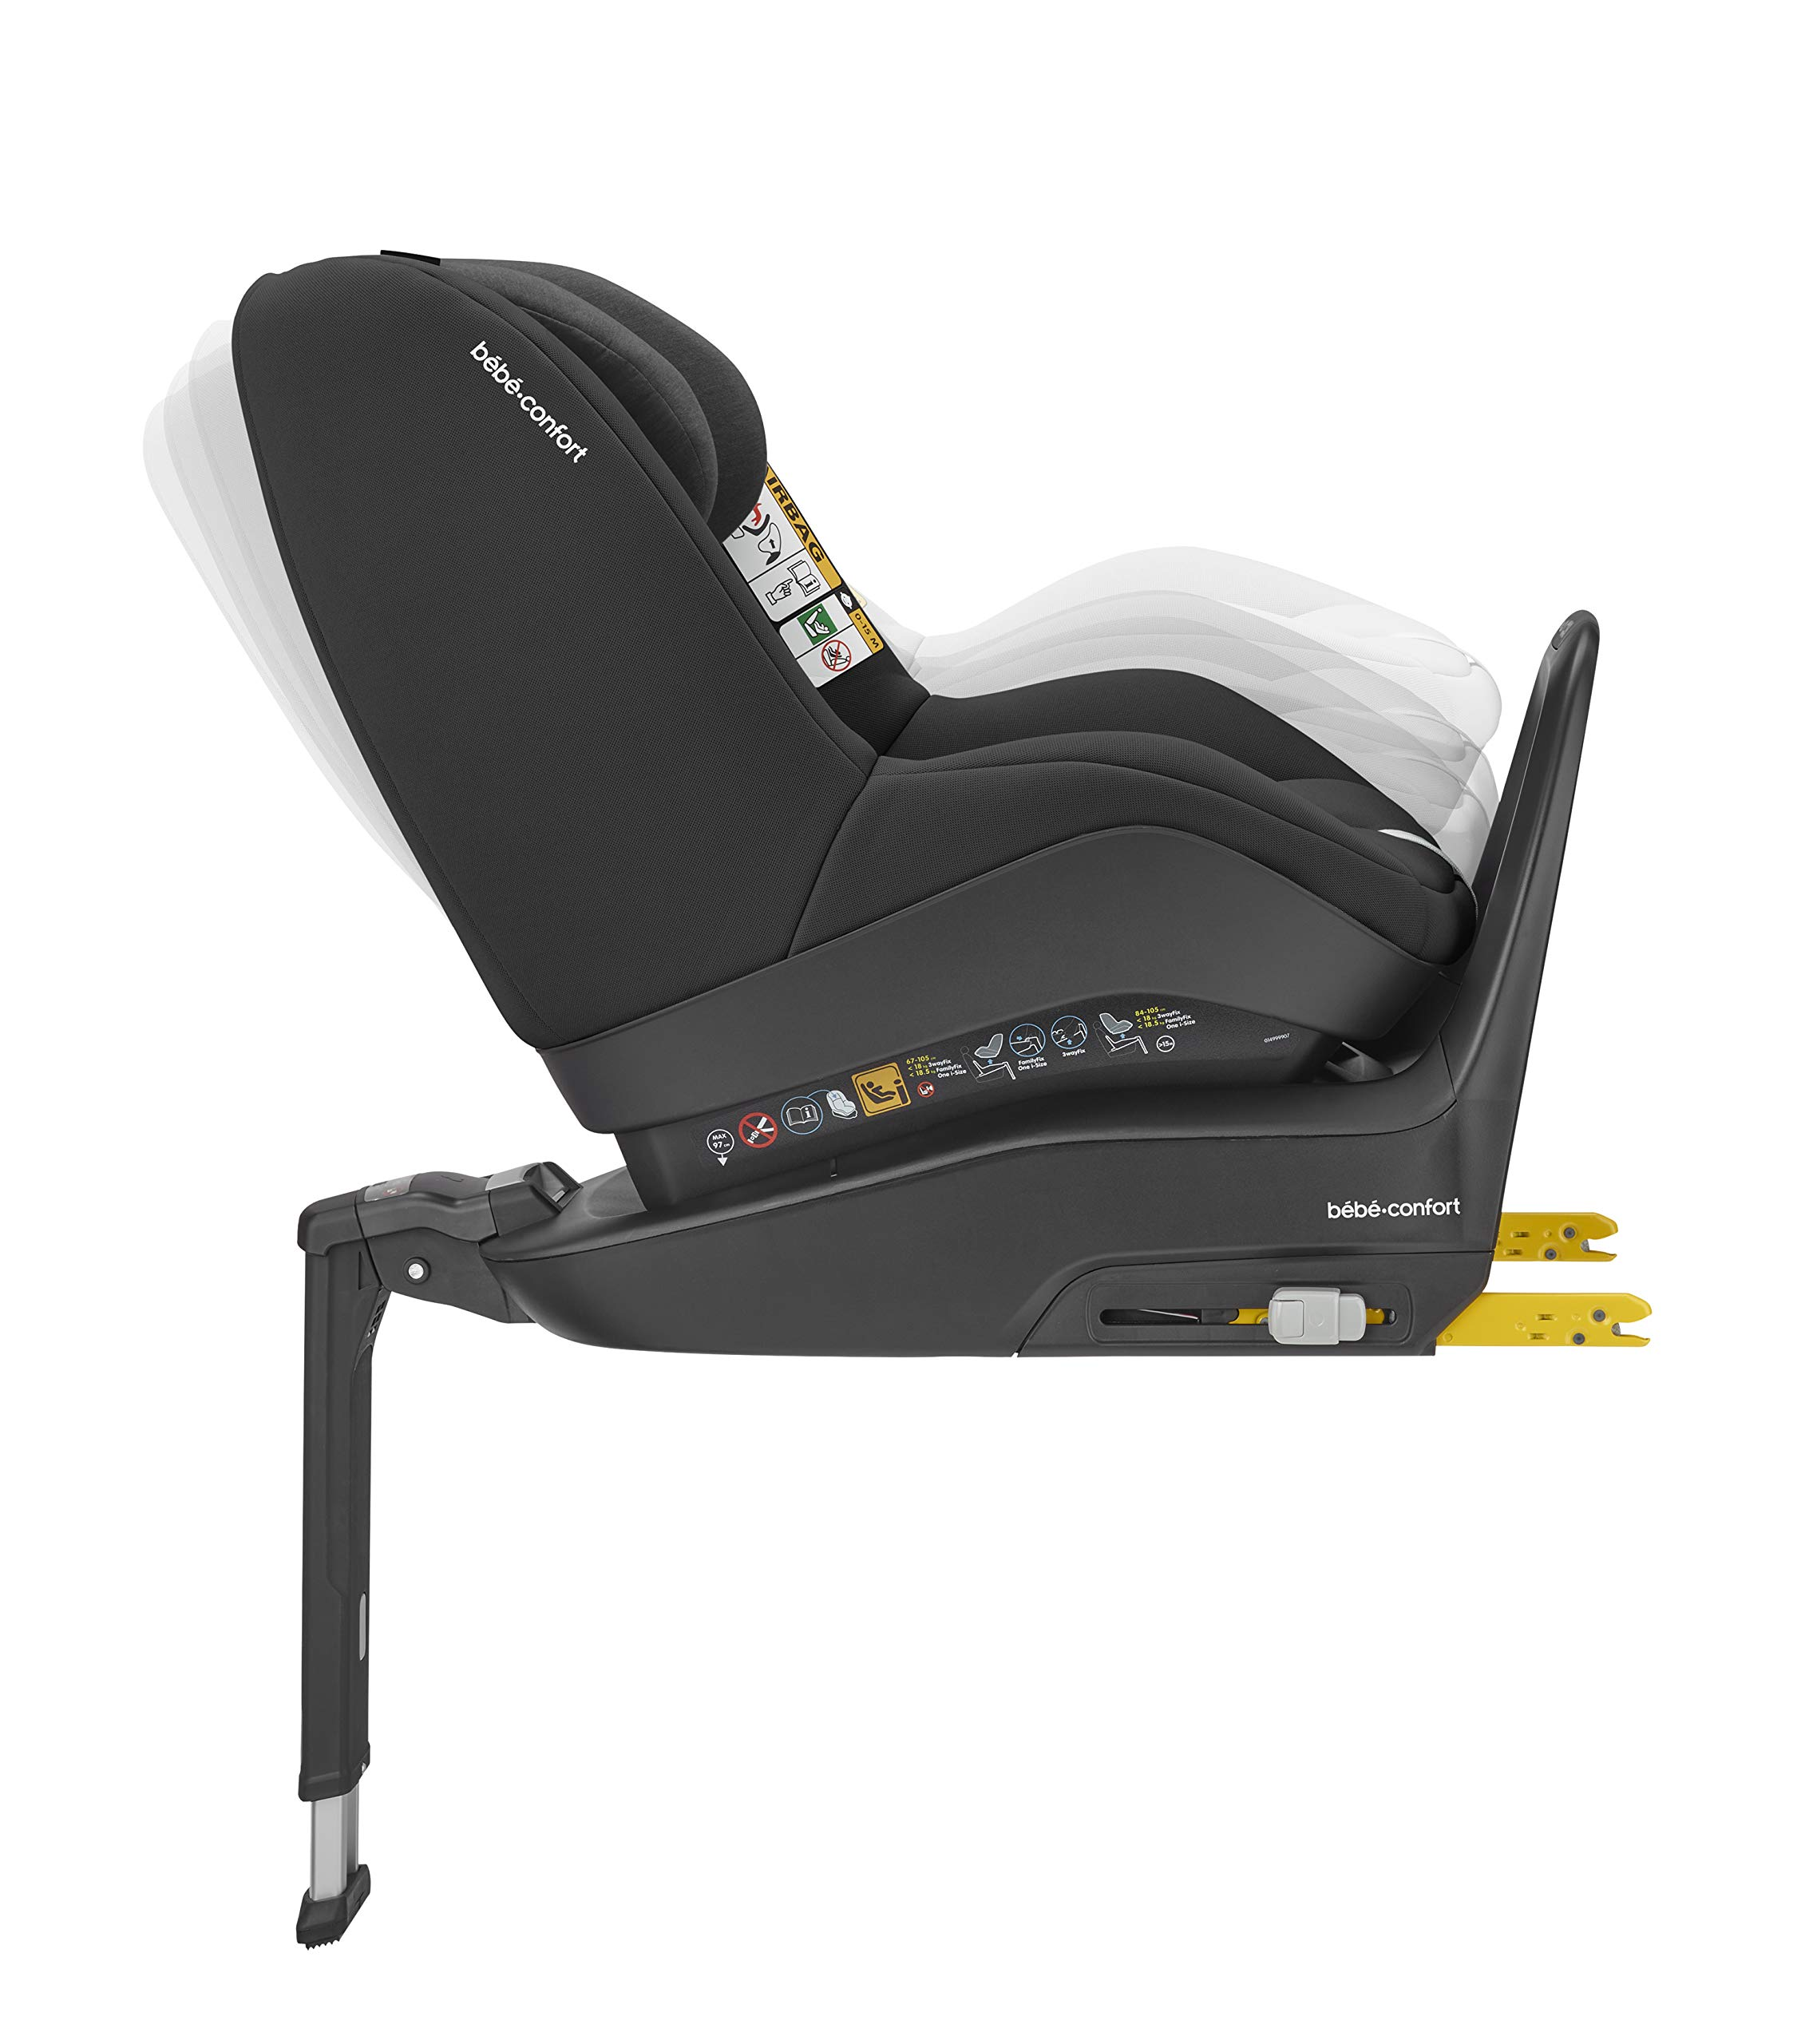 Bébé Confort Pearl Smart i Size 6.88 kg Bébé Confort Car seat 9-18 kg for children from 6 months to 4 years approx. height between 67 - 105 cm, approved i-size (ECE R129) Can be used in the opposite direction of travel up to 4 years (a backward mounted seat is 5 times safer) to protect baby's head and neck Car seat reclines into 4 positions in both directions for maximum comfort for your child. 5